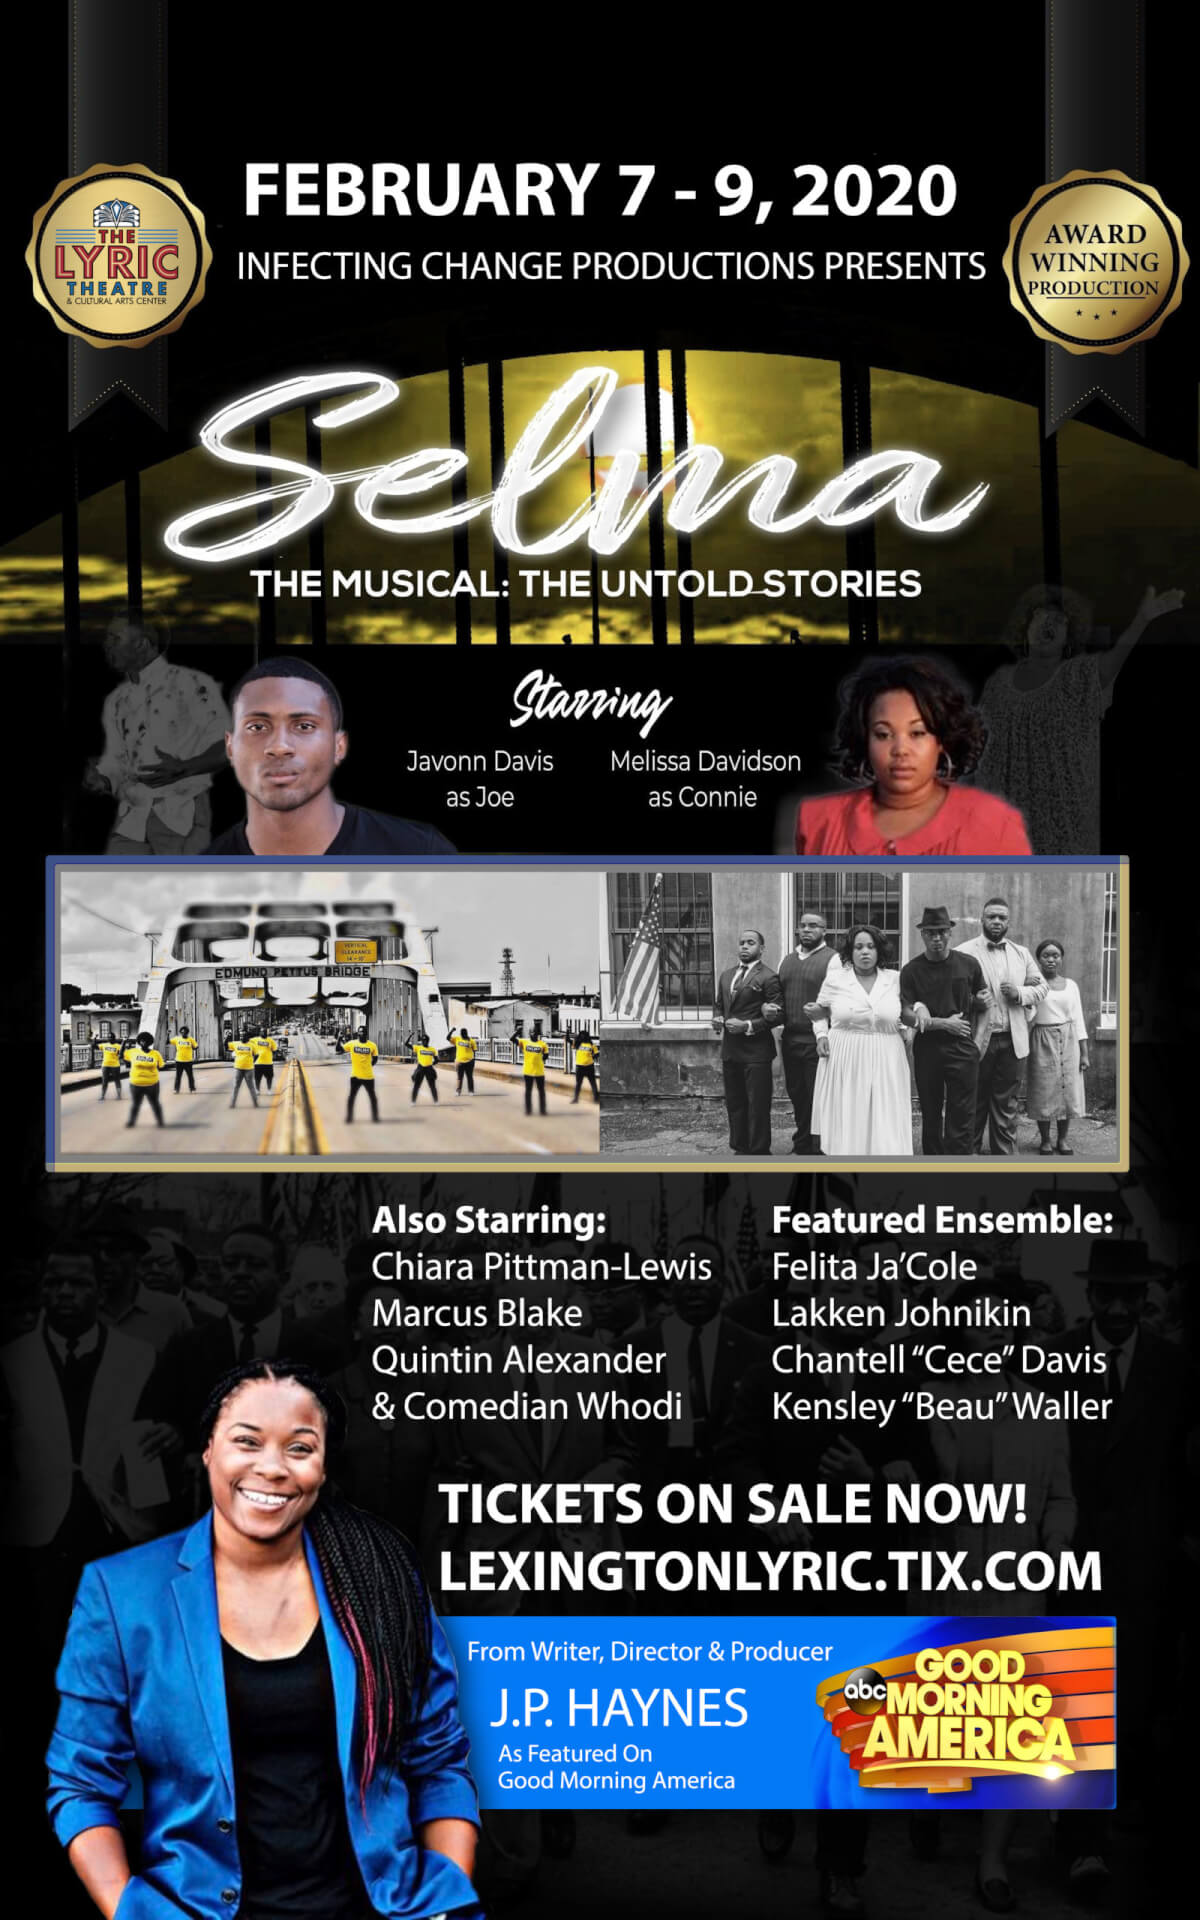 Selma the Musical: The Untold Stories